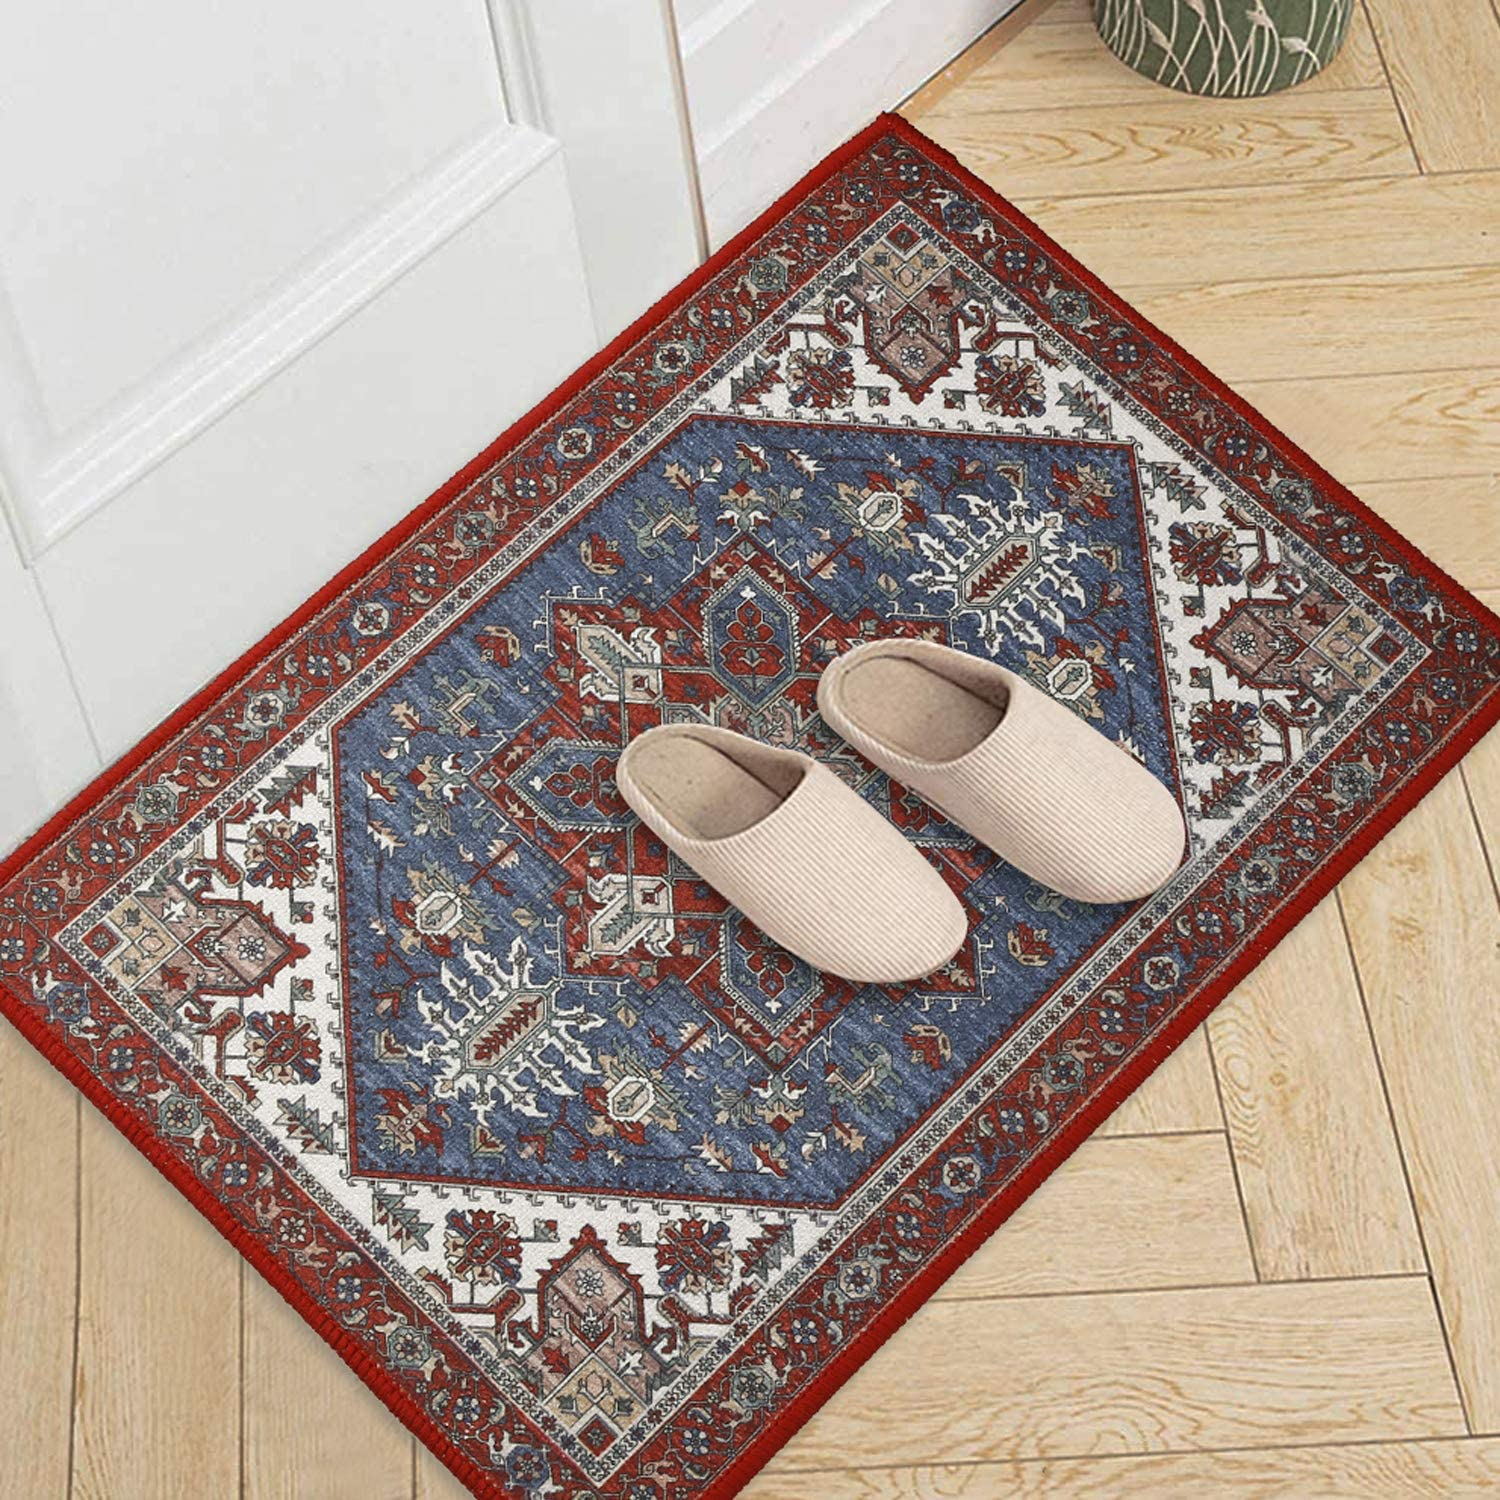 Soft Area Rugs 2' x 3' Indoor Carpet Washable Machine-Made Door Mat with Bohemian Nursery Rug Floor Mat for Living Room Dining Room Kids Teens Home Decor Rugs